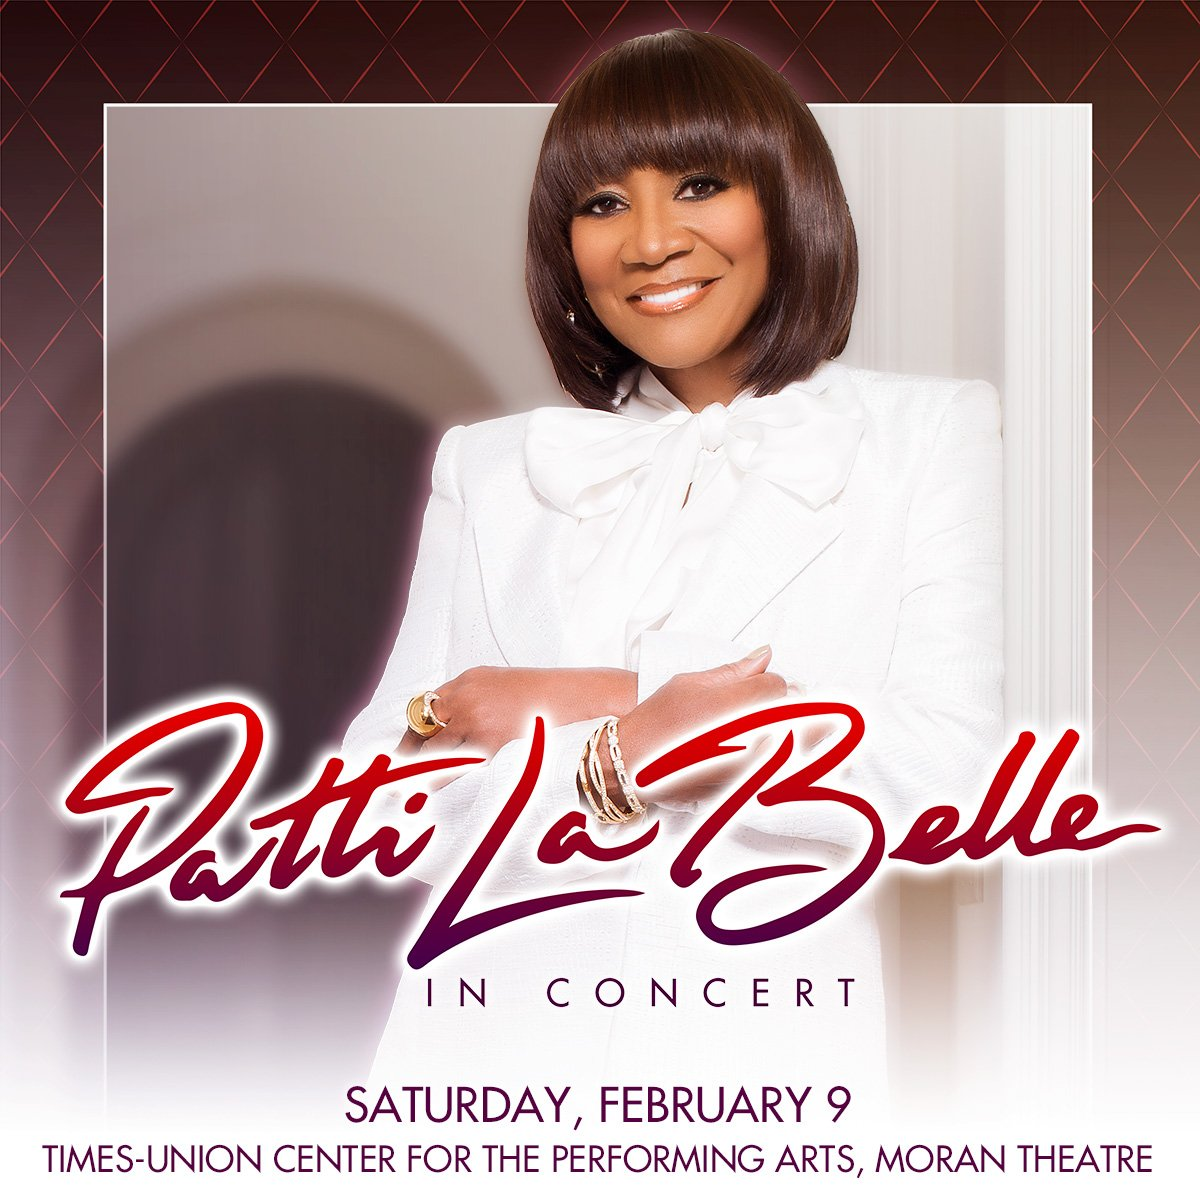 #Jacksonville! It's almost time for the legendary Patti LaBelle (@MsPattiPatti) at Times-Union Center for the Performing Arts, Moran Theatre (@jaxevents). Get your tickets for Next Saturday 2/9 today! https://bit.ly/2G0Terh